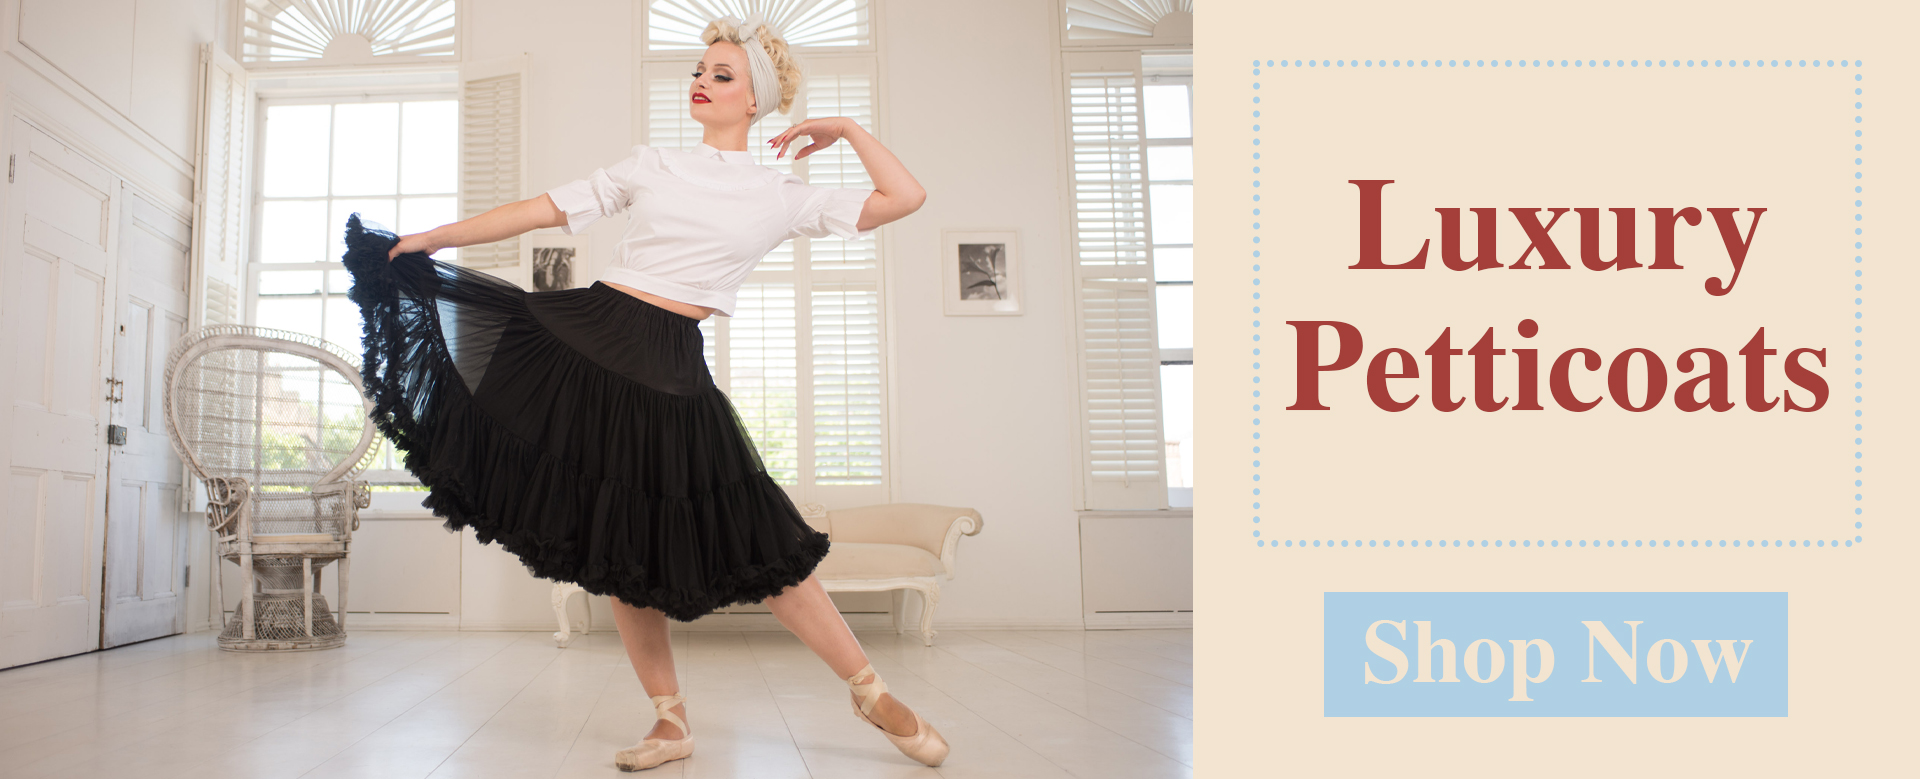 Luxury Petticoats